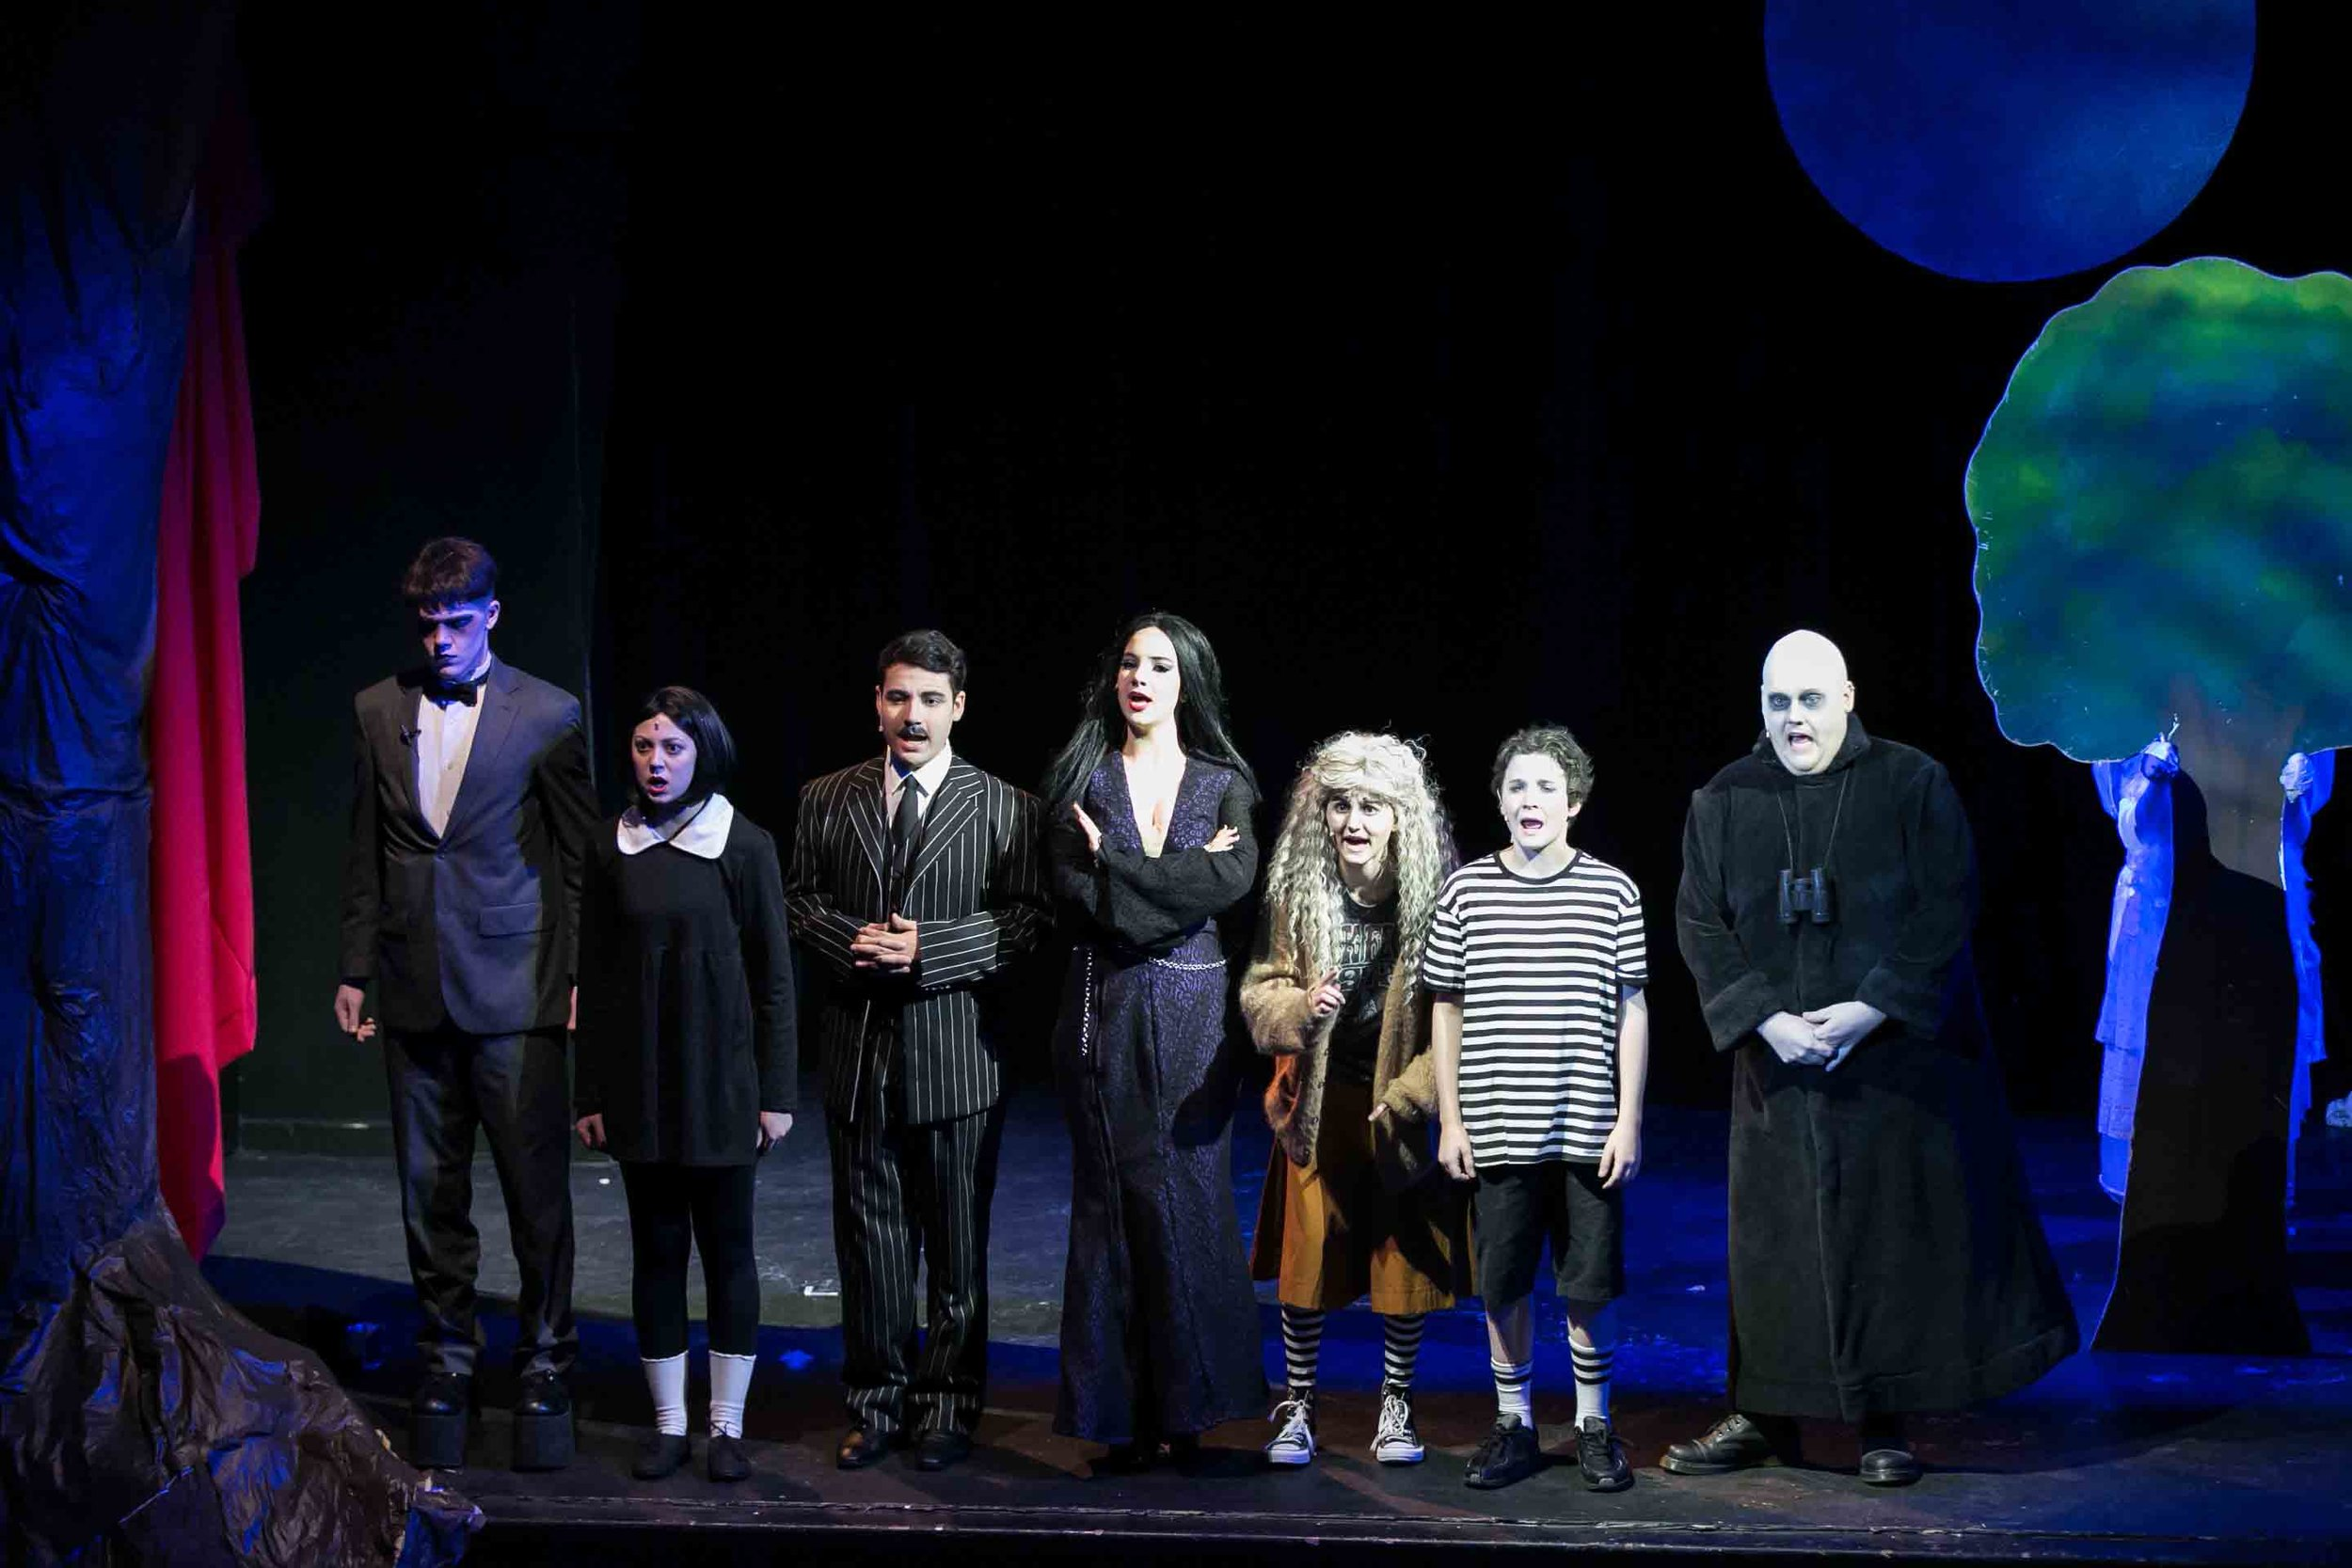 6-19-16 Addams Family Creepy Cast 0102.jpg